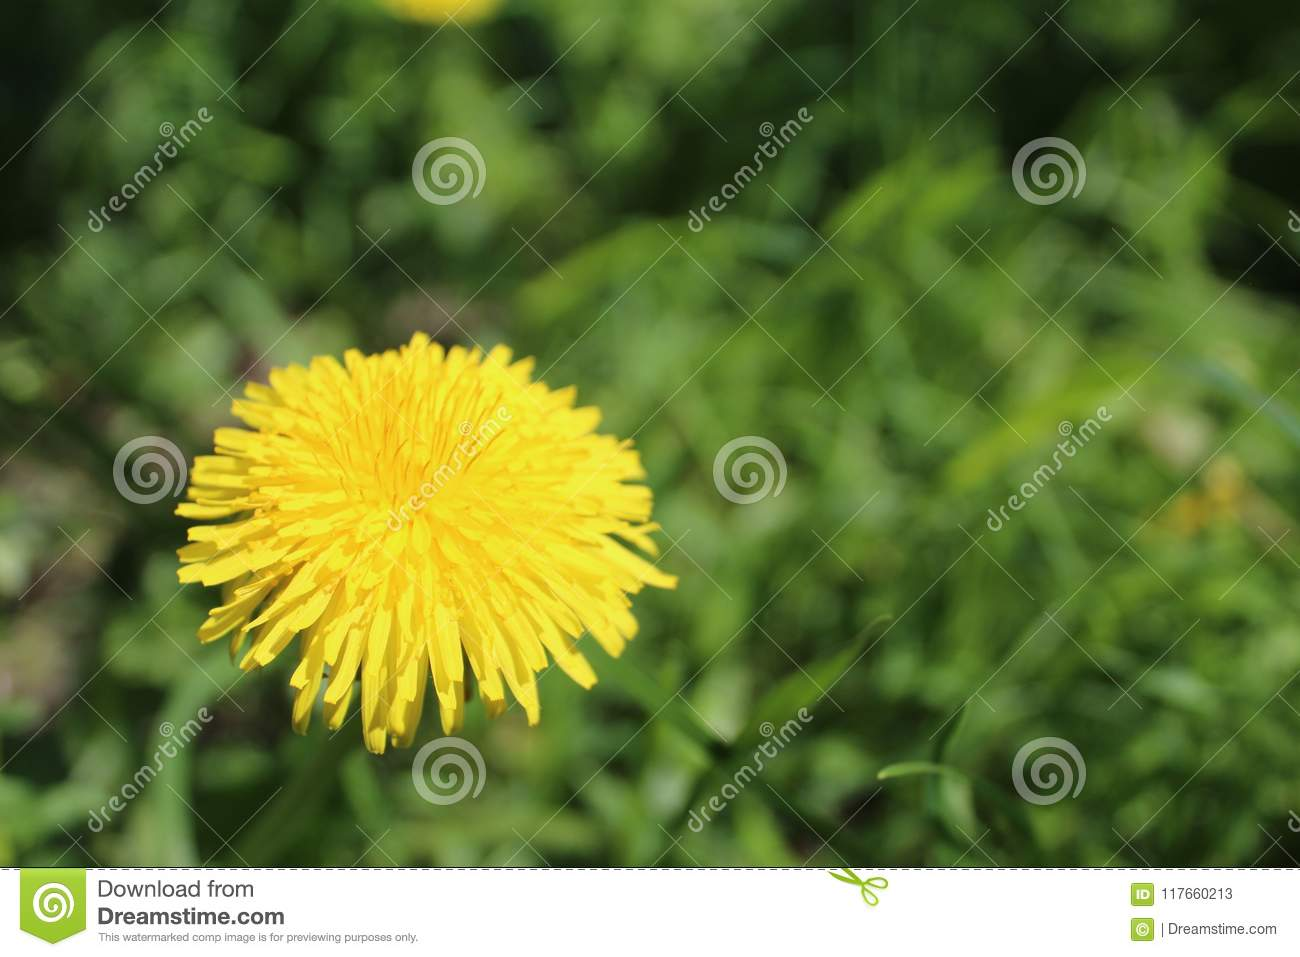 Dandelion Is A Perennial Plant With Yellow Flowers Stock Image